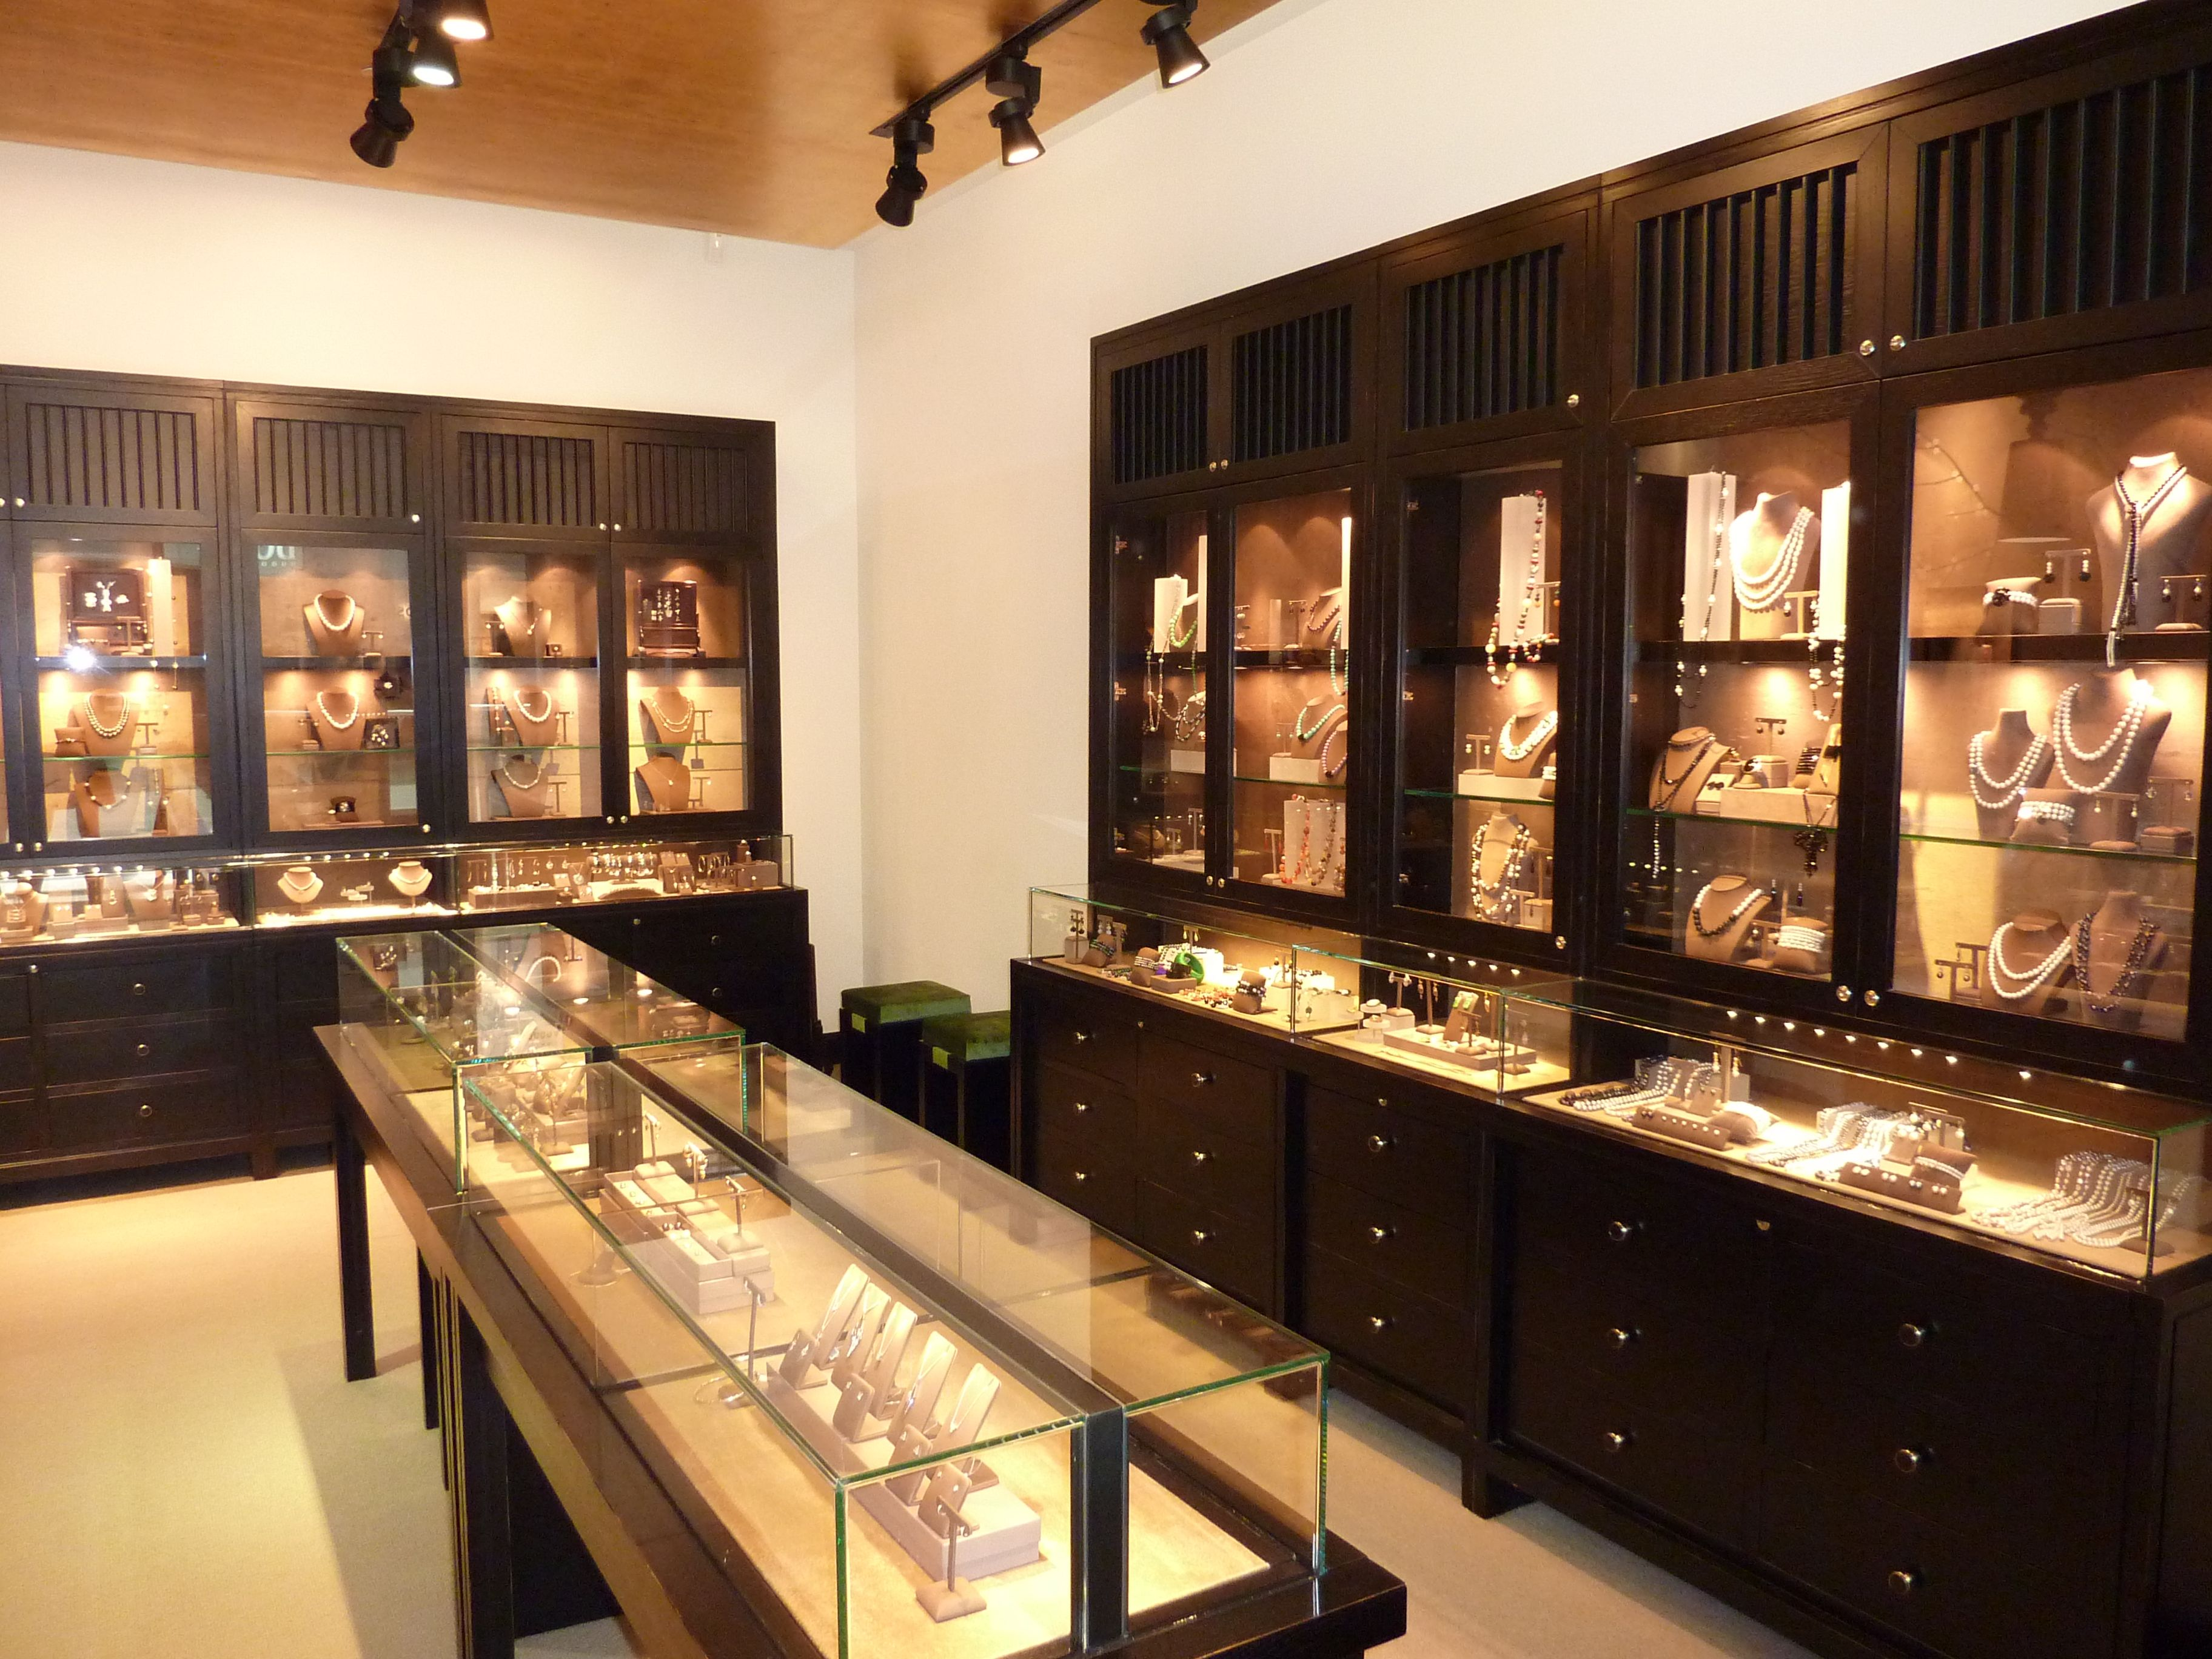 Display Cabinets Are Designed To Ear As Pieces Of Boudoir Furniture Brooke Aitken Design